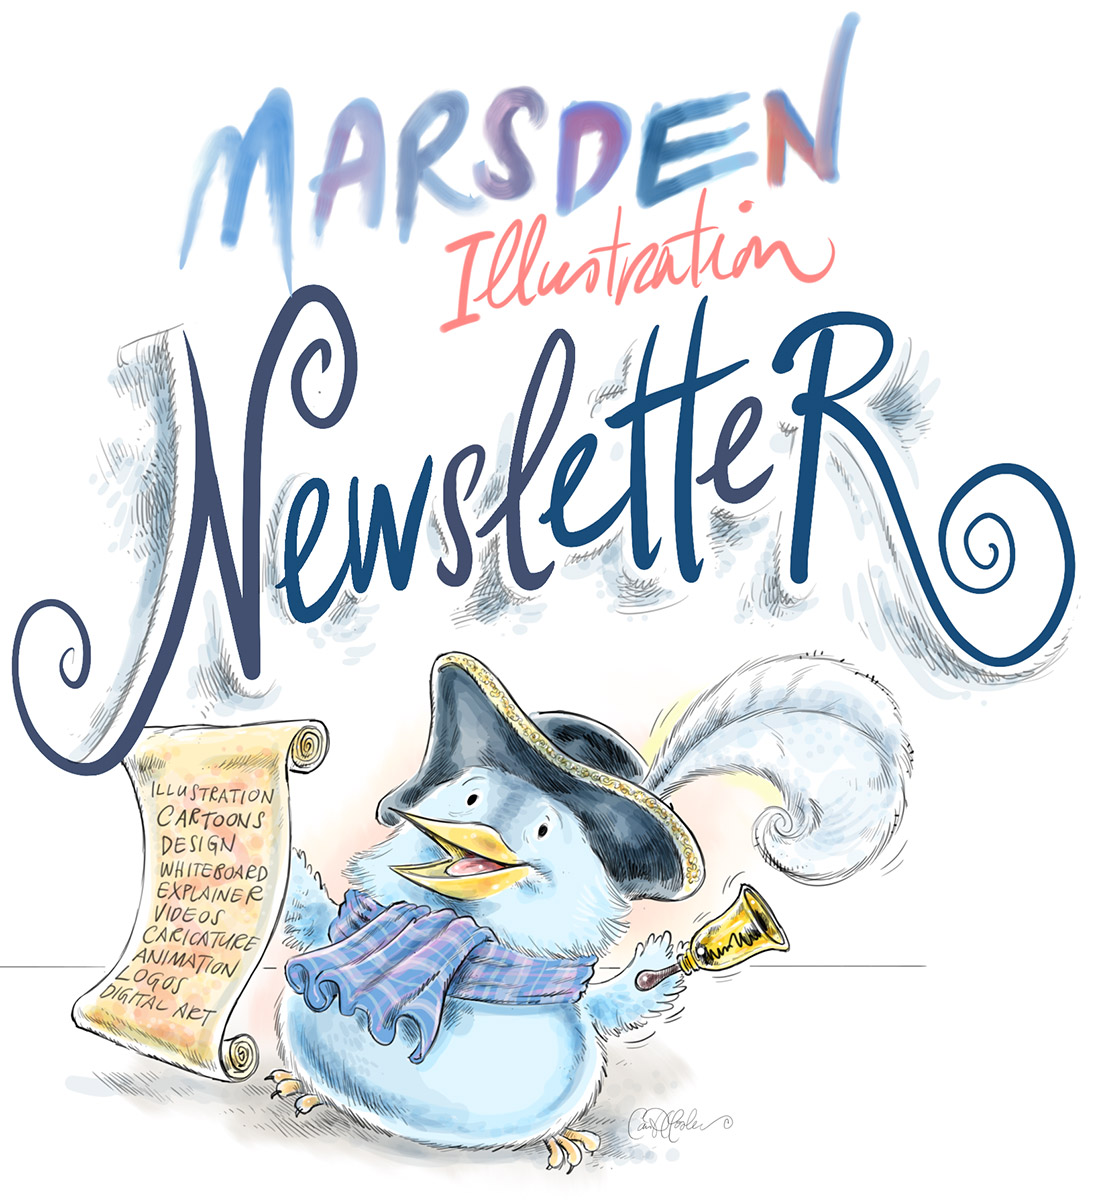 Exciting News and Updates from Illustrator Ian David Marsden